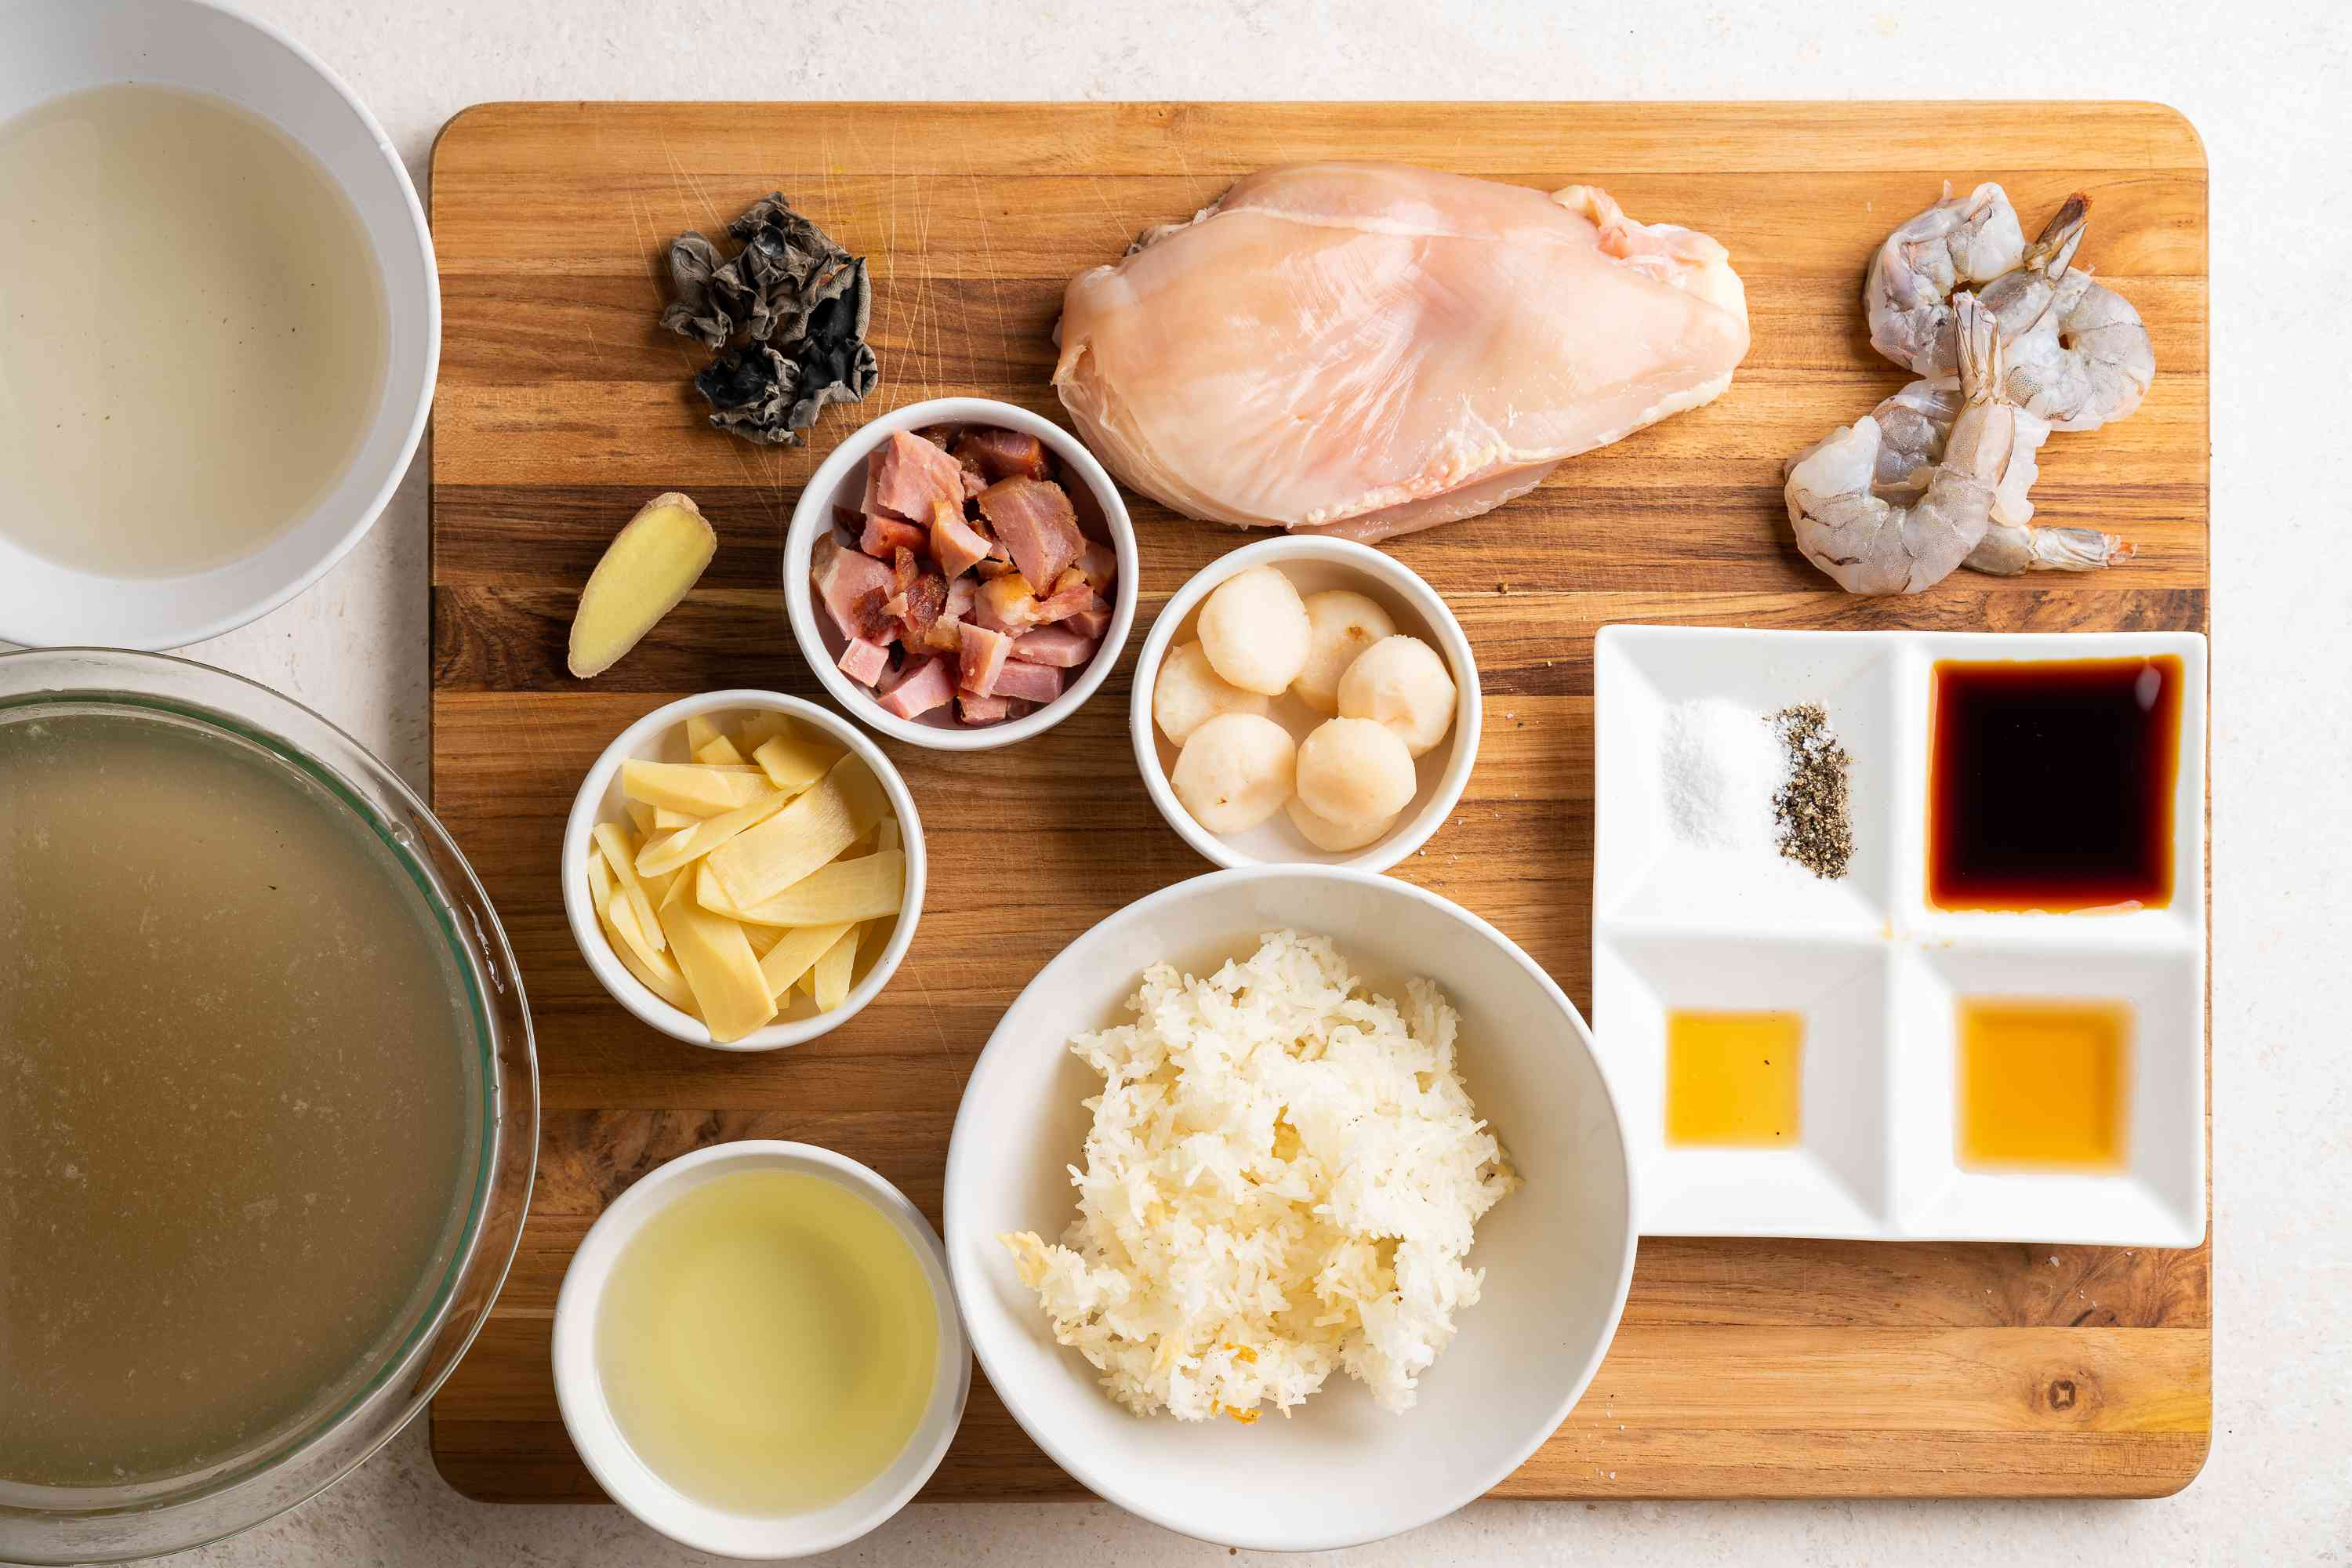 Sizzling Rice Soup ingredients